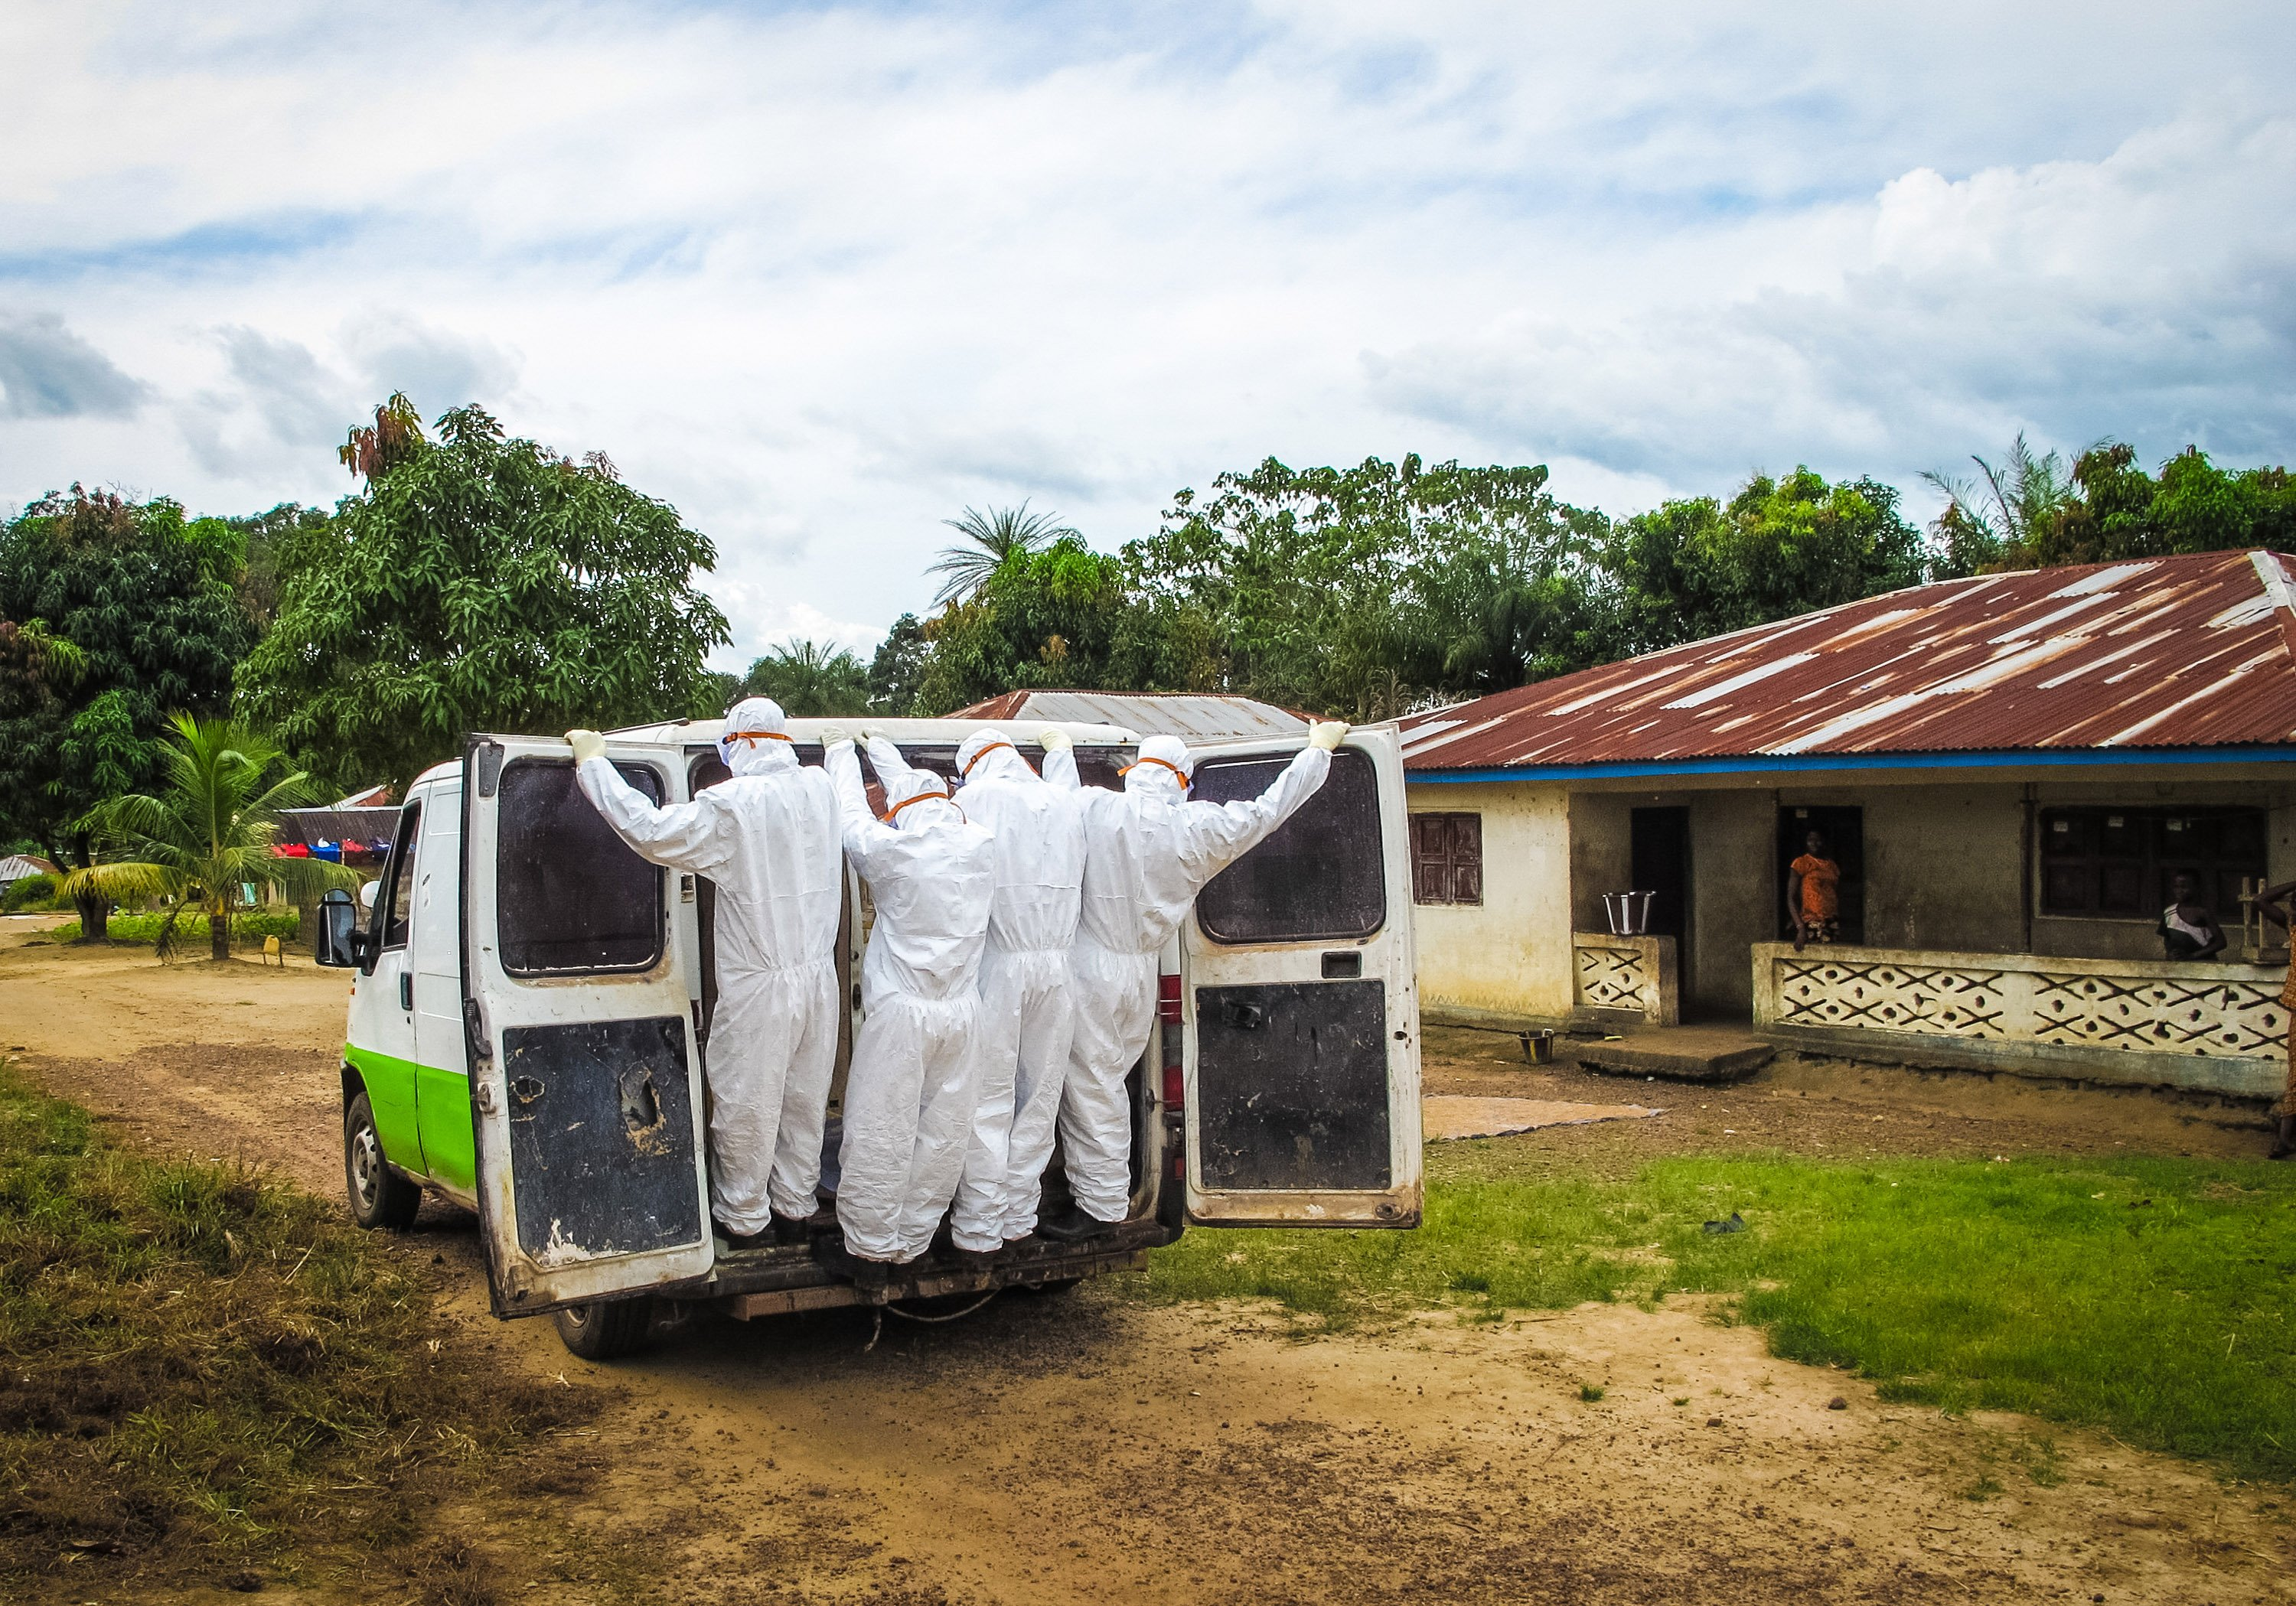 Health workers transport the body of a person suspected to have died of the Ebola virus in Port Loko Community, situated on the outskirts of Freetown, Sierra Leoneon Oct. 21, 2014.